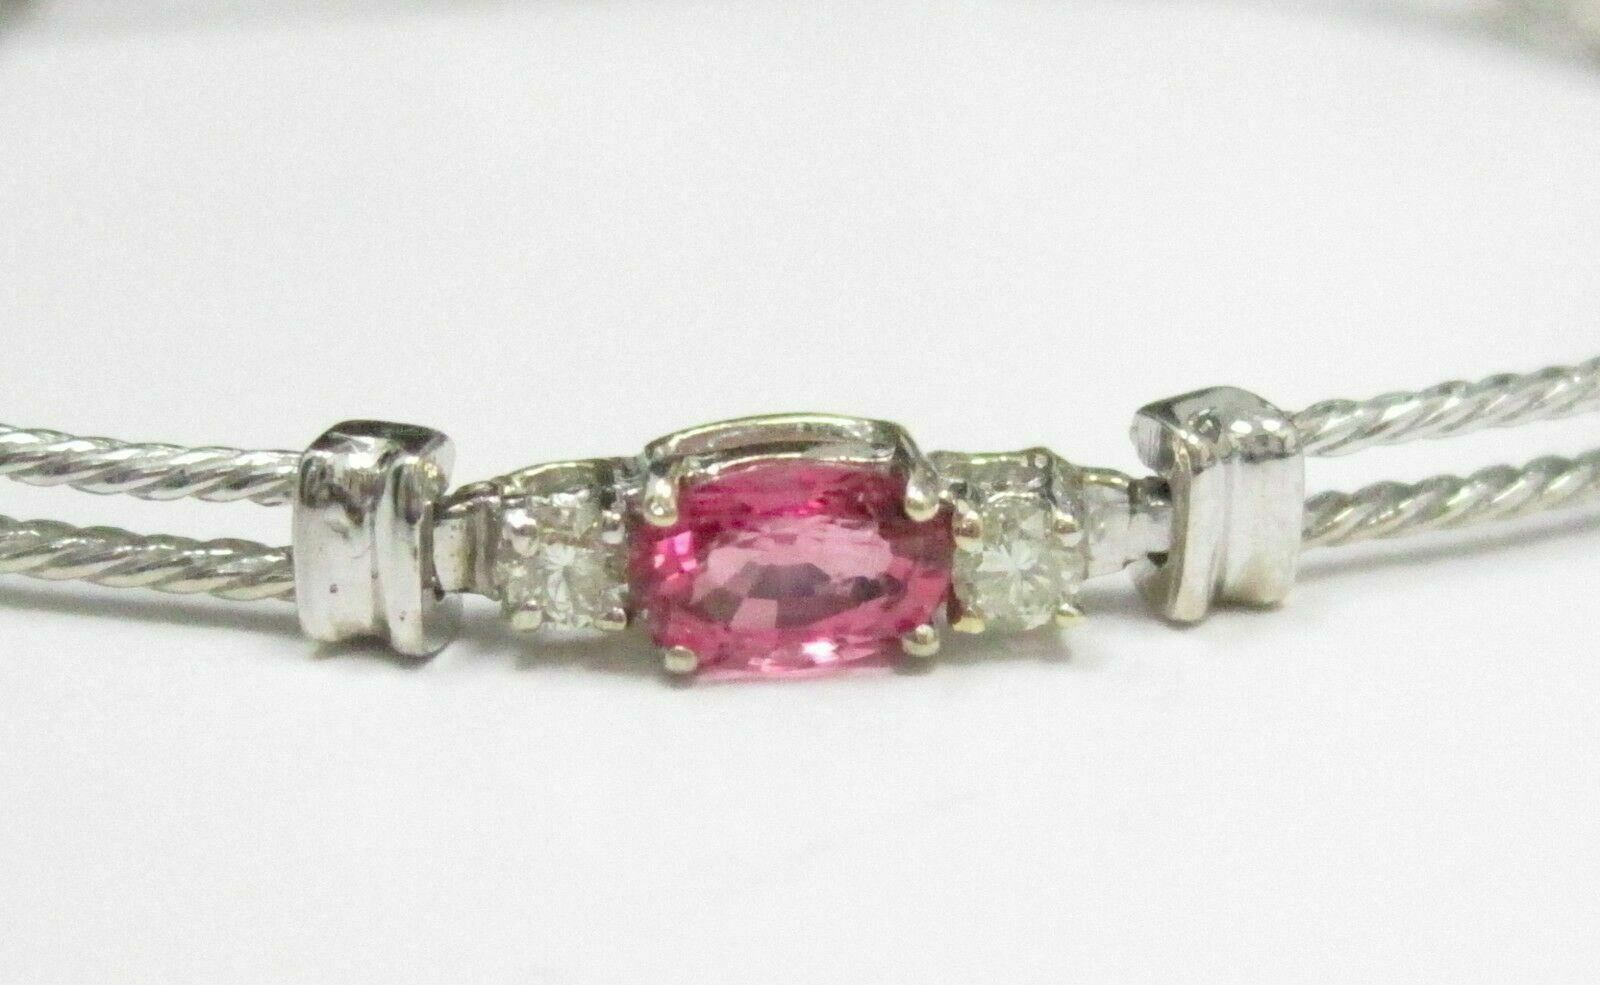 3.76 TCW Round Brilliant Diamonds and Oval Tourmaline Bracelet 14kt WG